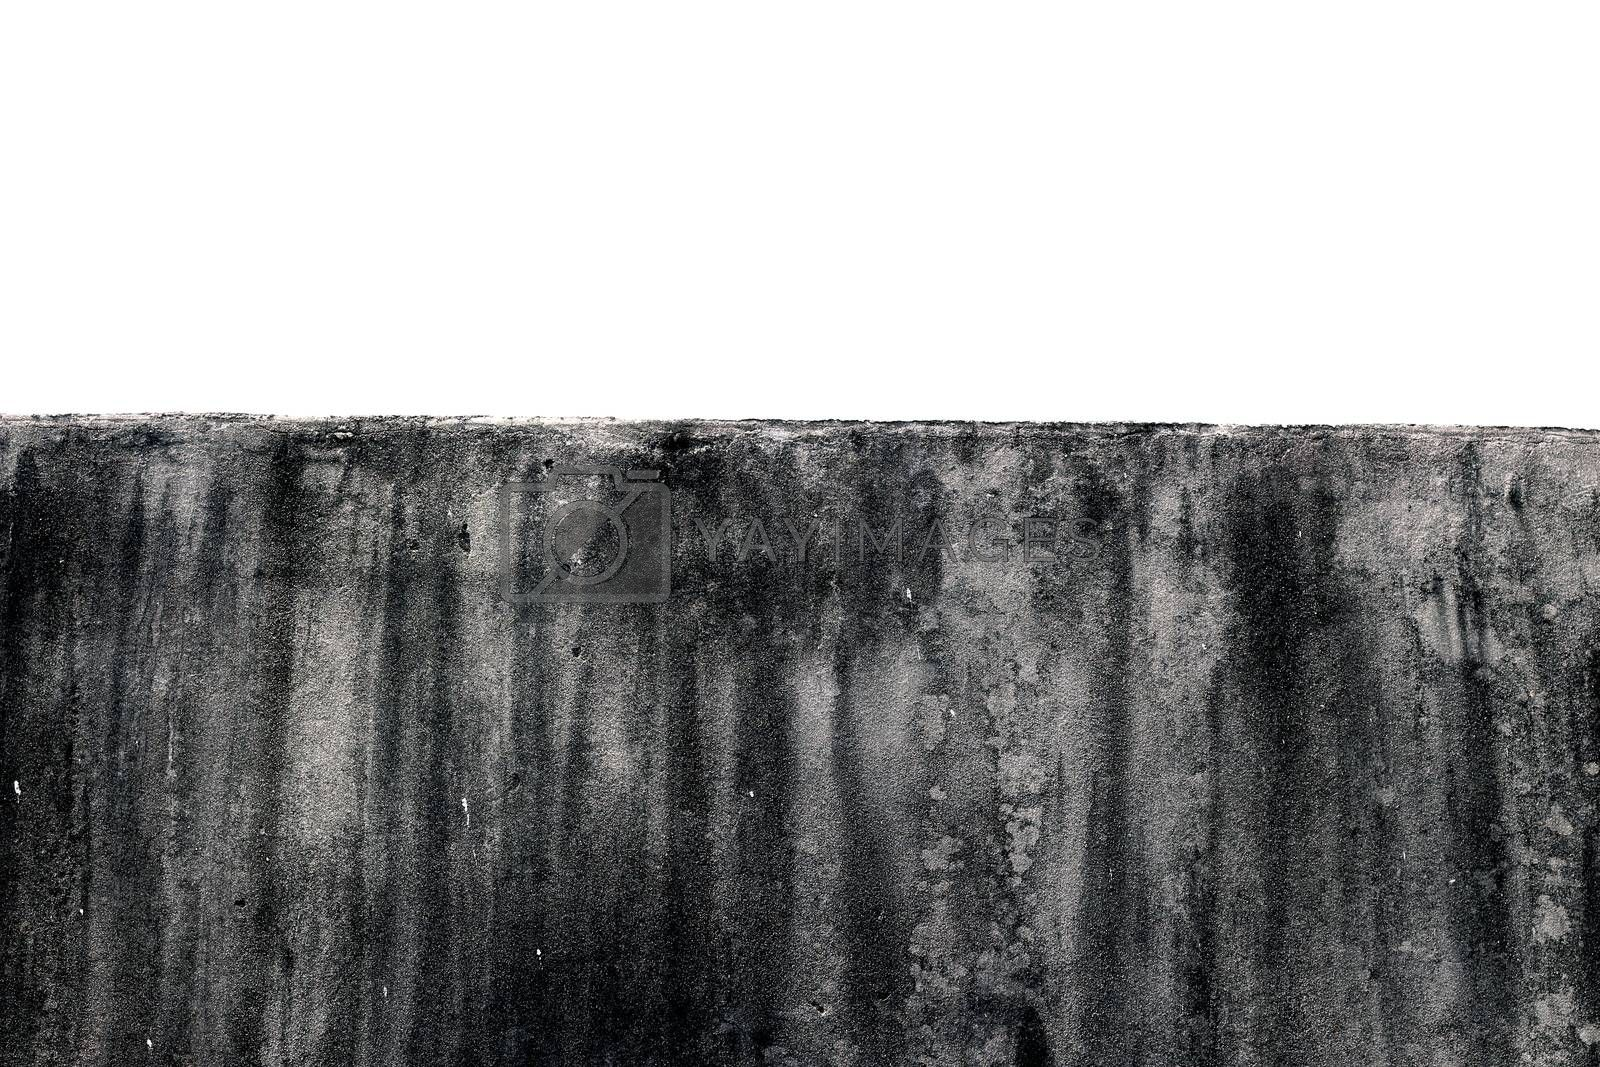 Royalty free image of wall surrounding Texture of the gray polished concrete wall with scratches on white background by cgdeaw